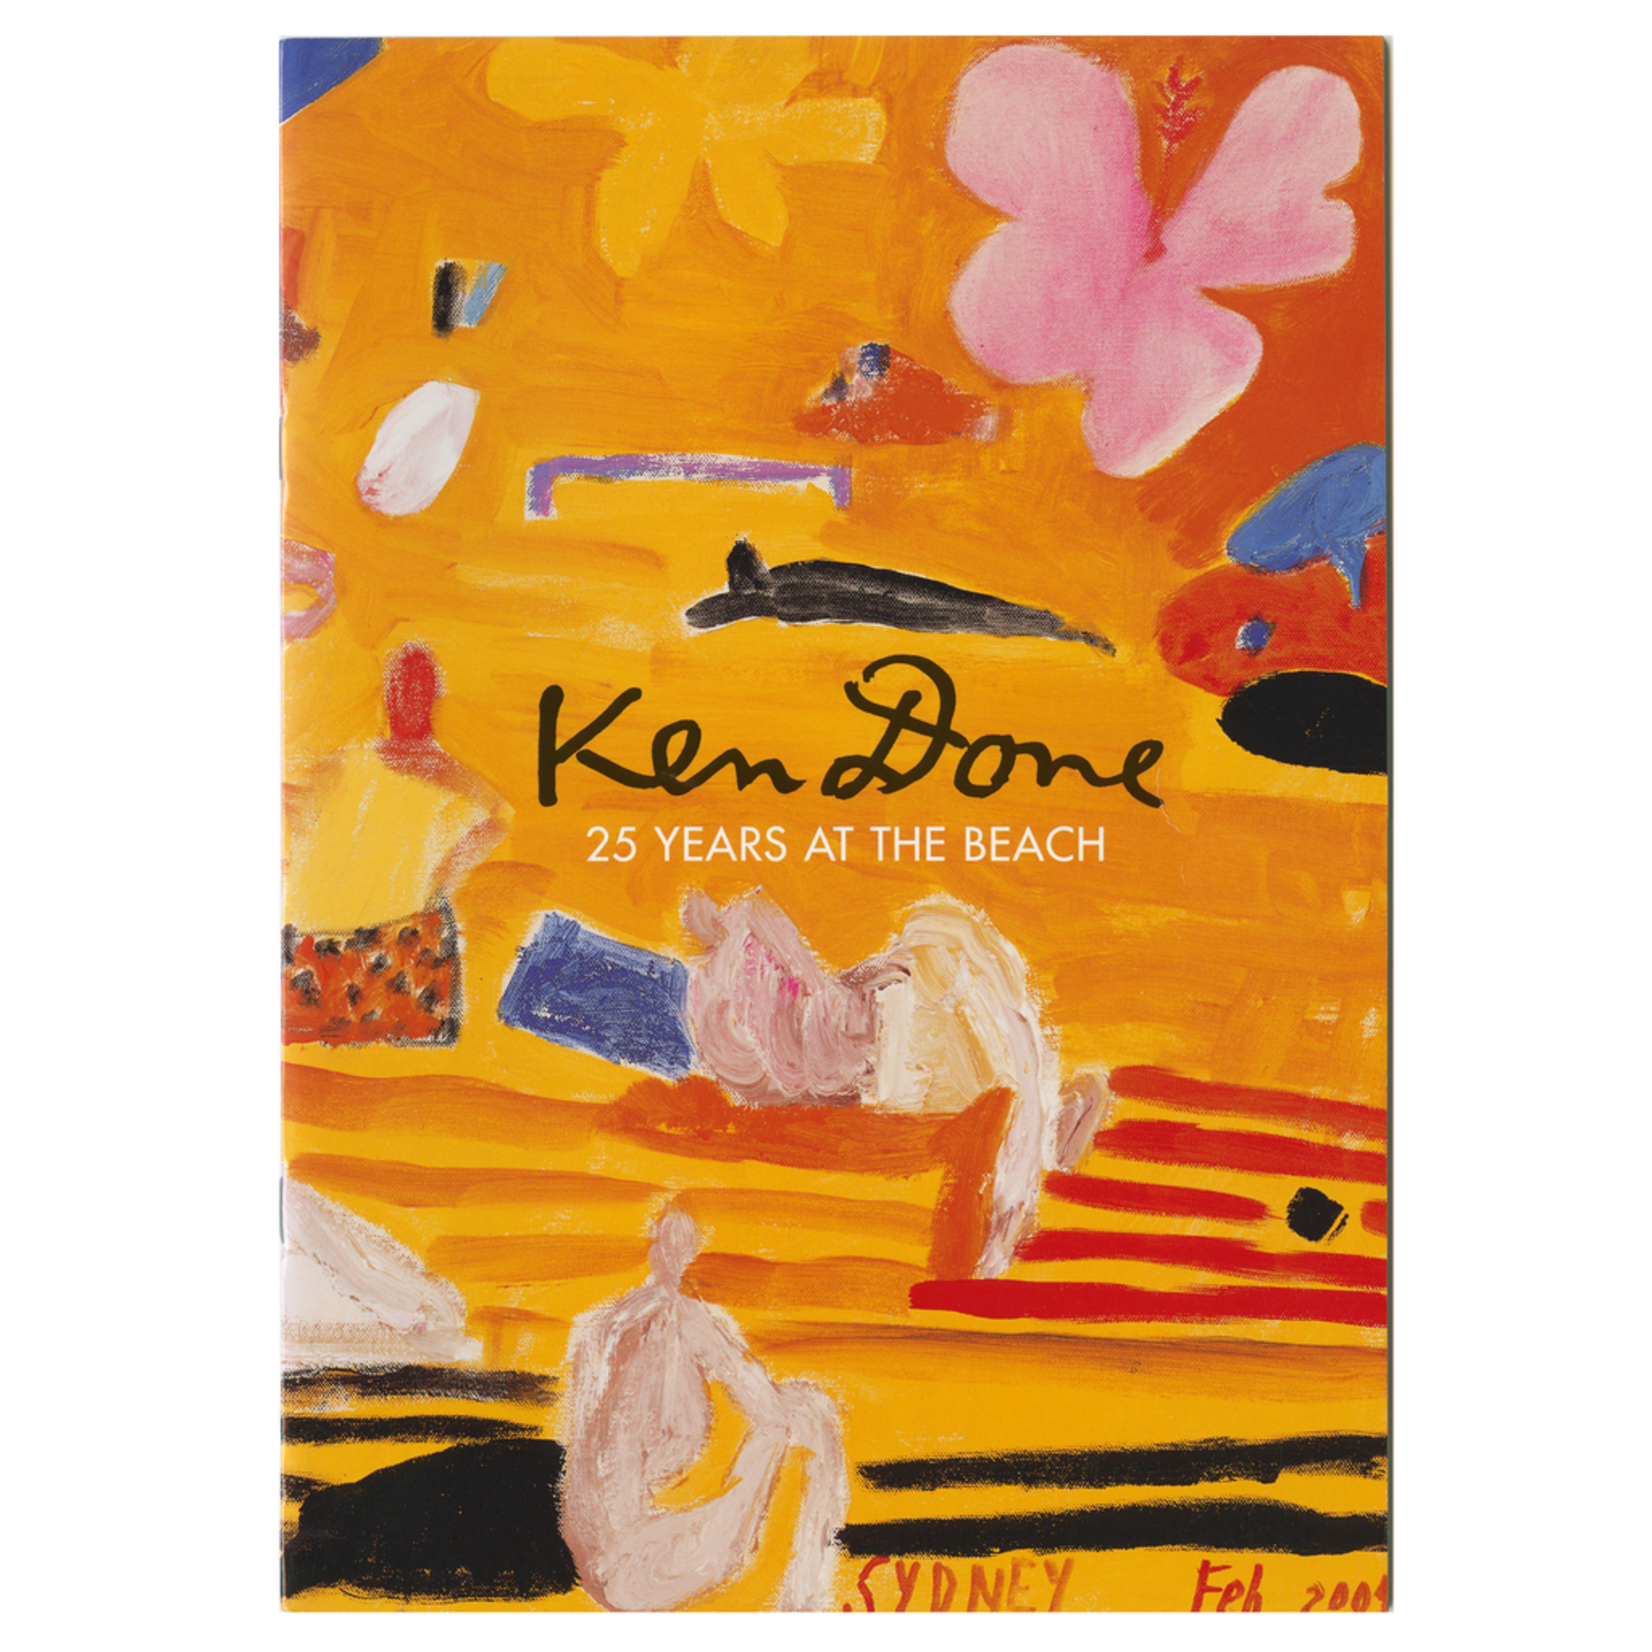 Books & Stationery Catalogue - Ken Done: 25 Years at the Beach